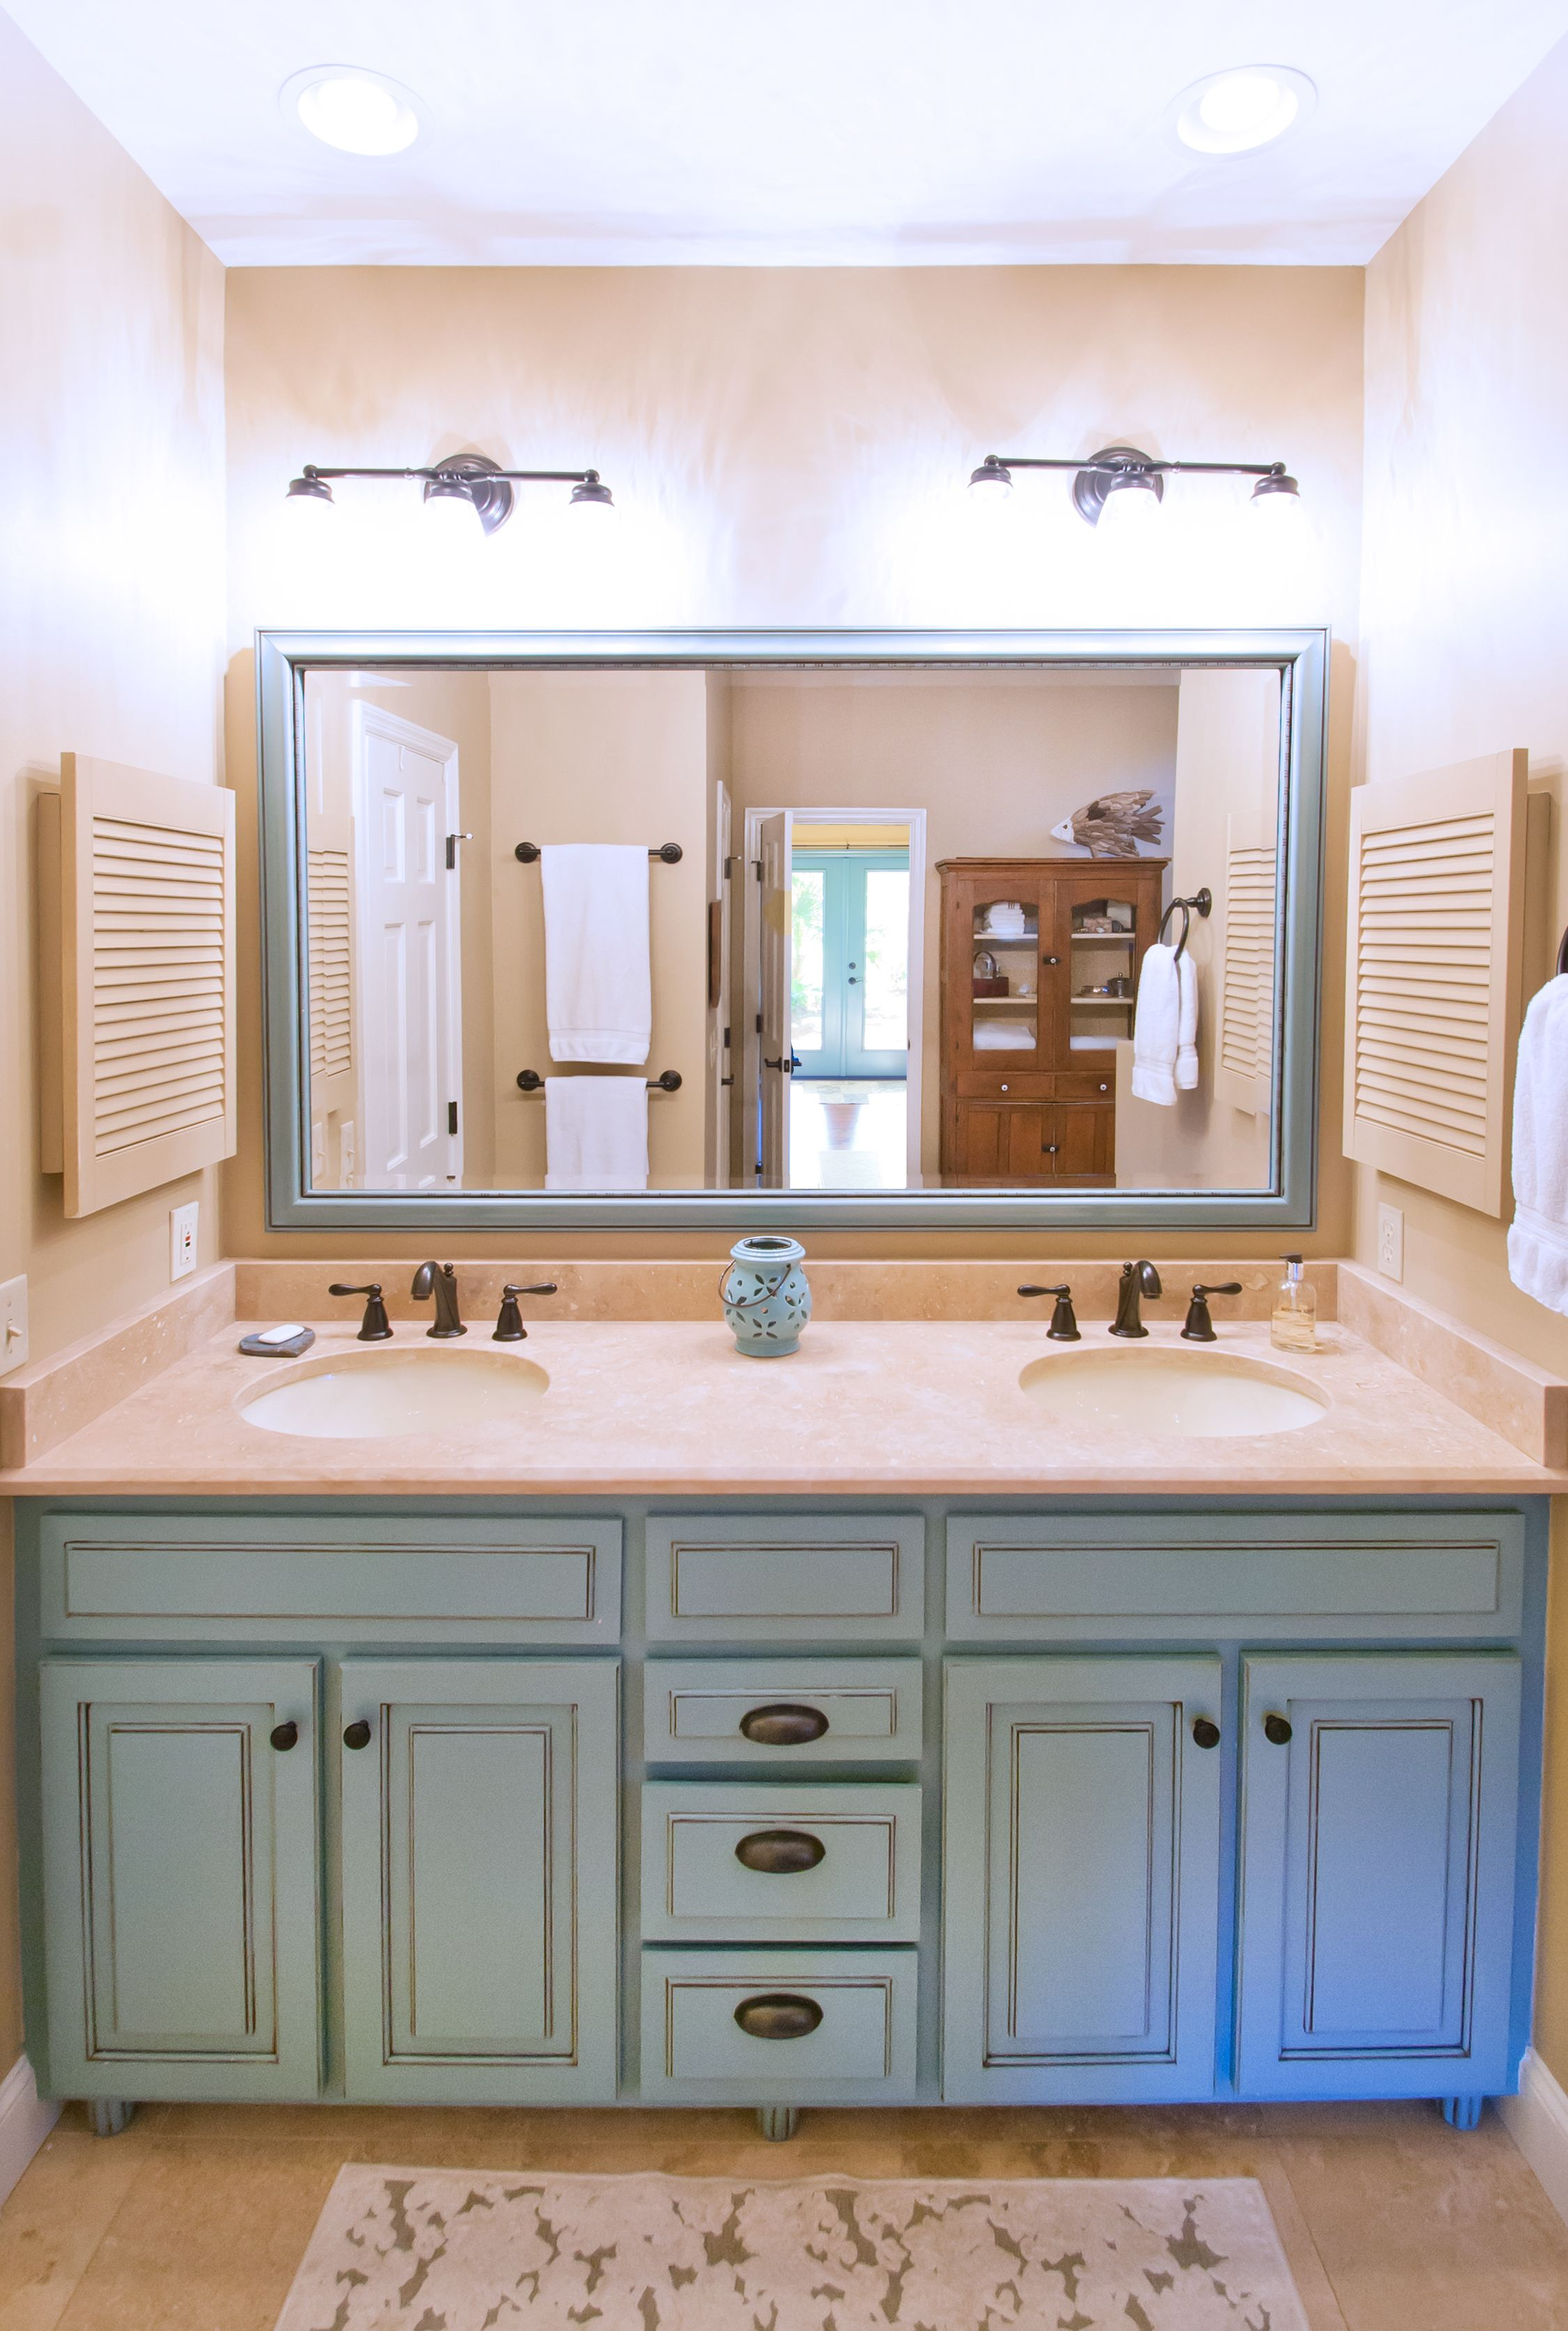 blue bathroom vanity robins egg persian green lowcountry homes pinterest bathroom. Black Bedroom Furniture Sets. Home Design Ideas